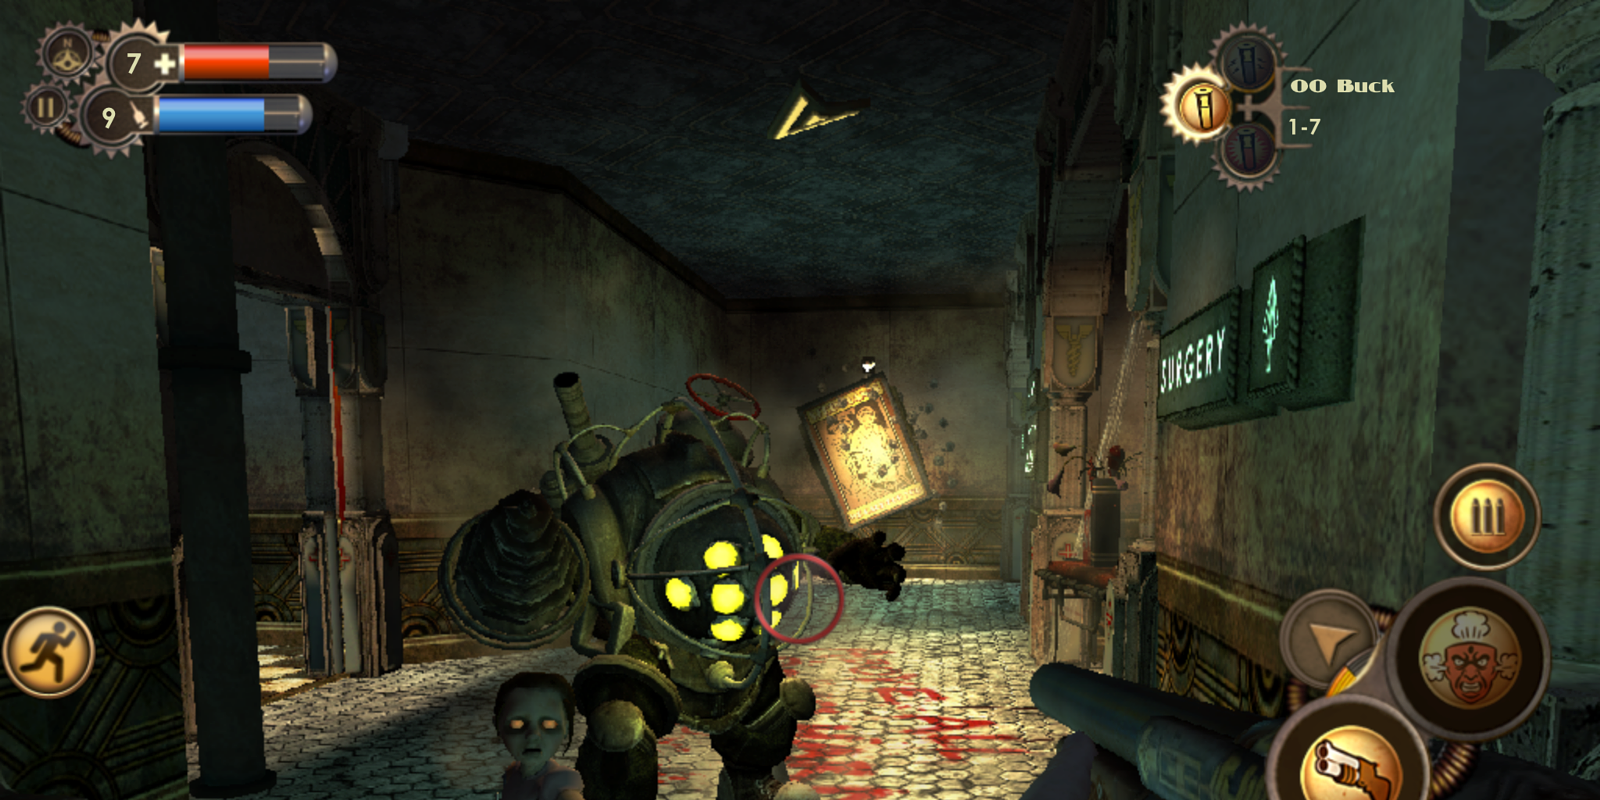 BioShock announced for iPhone and iPad, coming this summer